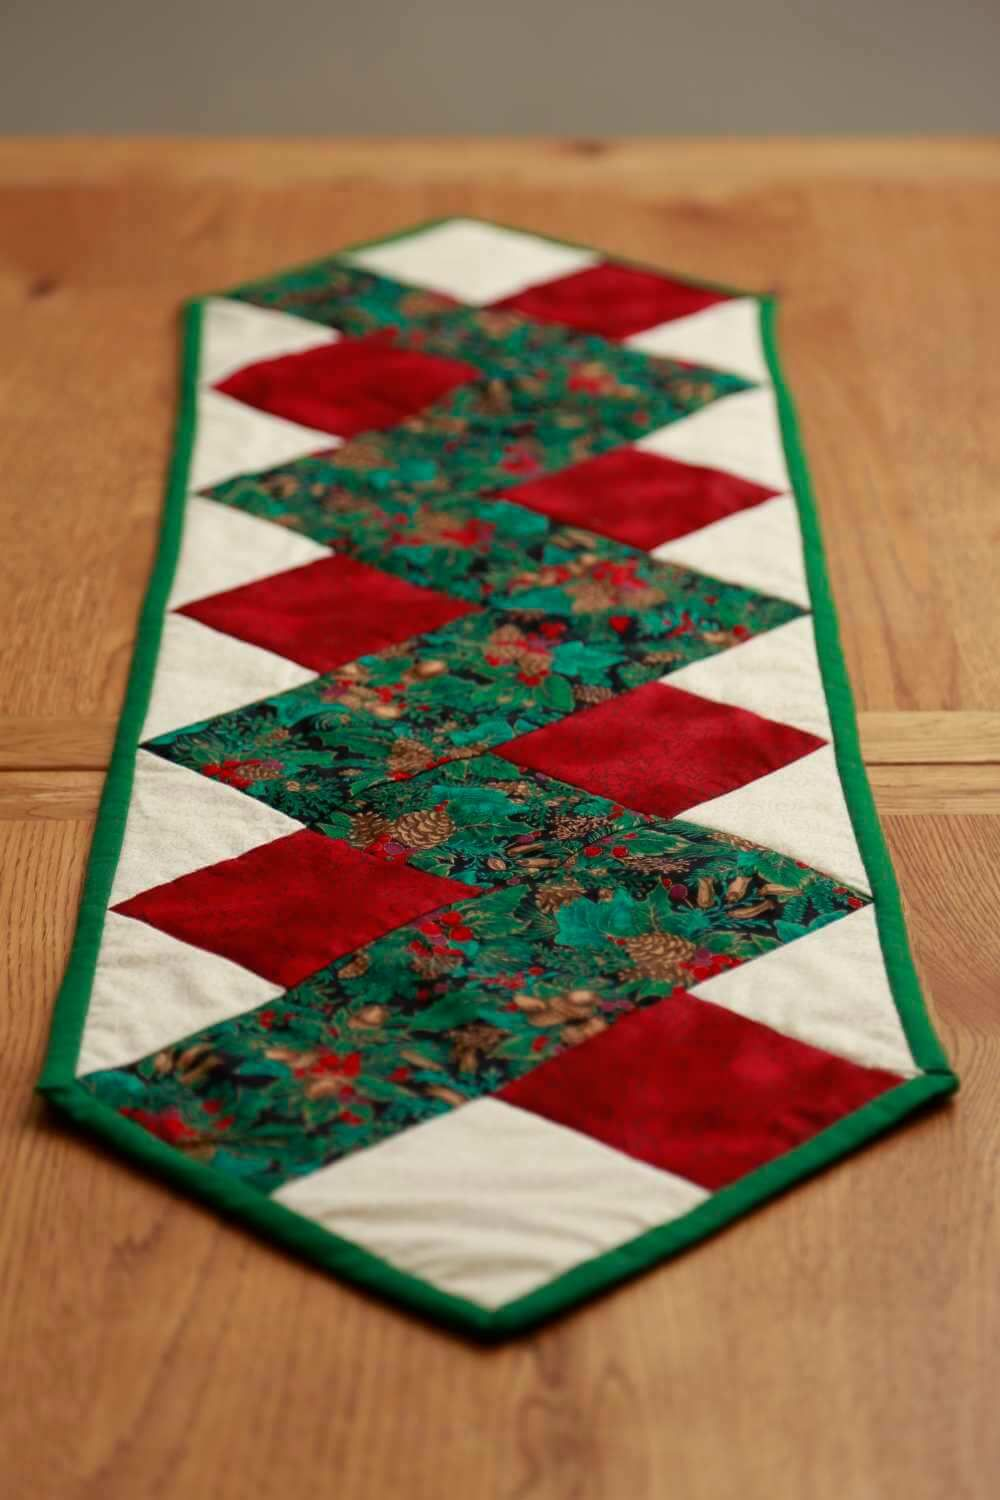 Christmas Table Runner Quilted.Zig Zag Christmas Table Runner Quilted Table Runners